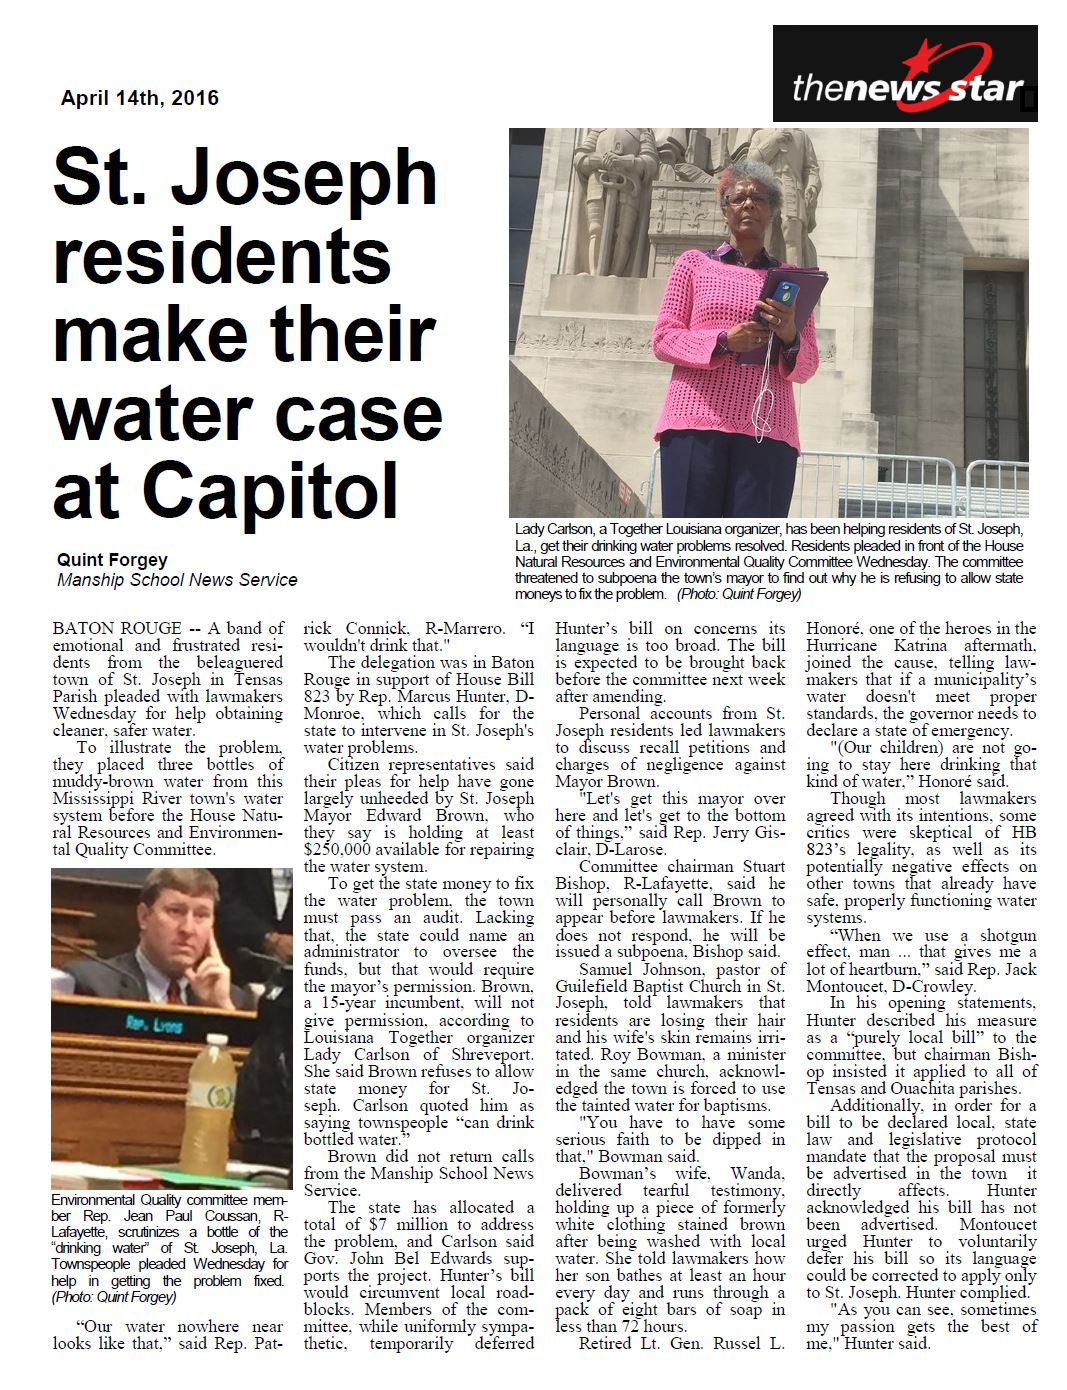 2016-4-14_Monroe_News_Star_St._Joseph_residents_make_their_water_case_at_Capitol.JPG